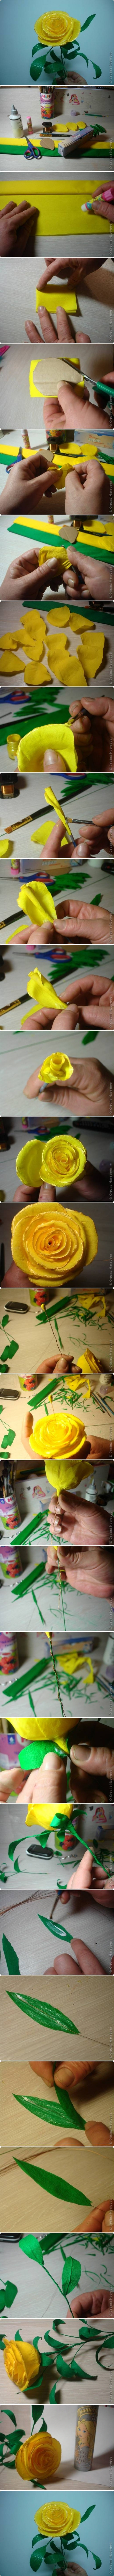 How to make Handmade Rose flower arrangements step by step DIY tutorial instructions